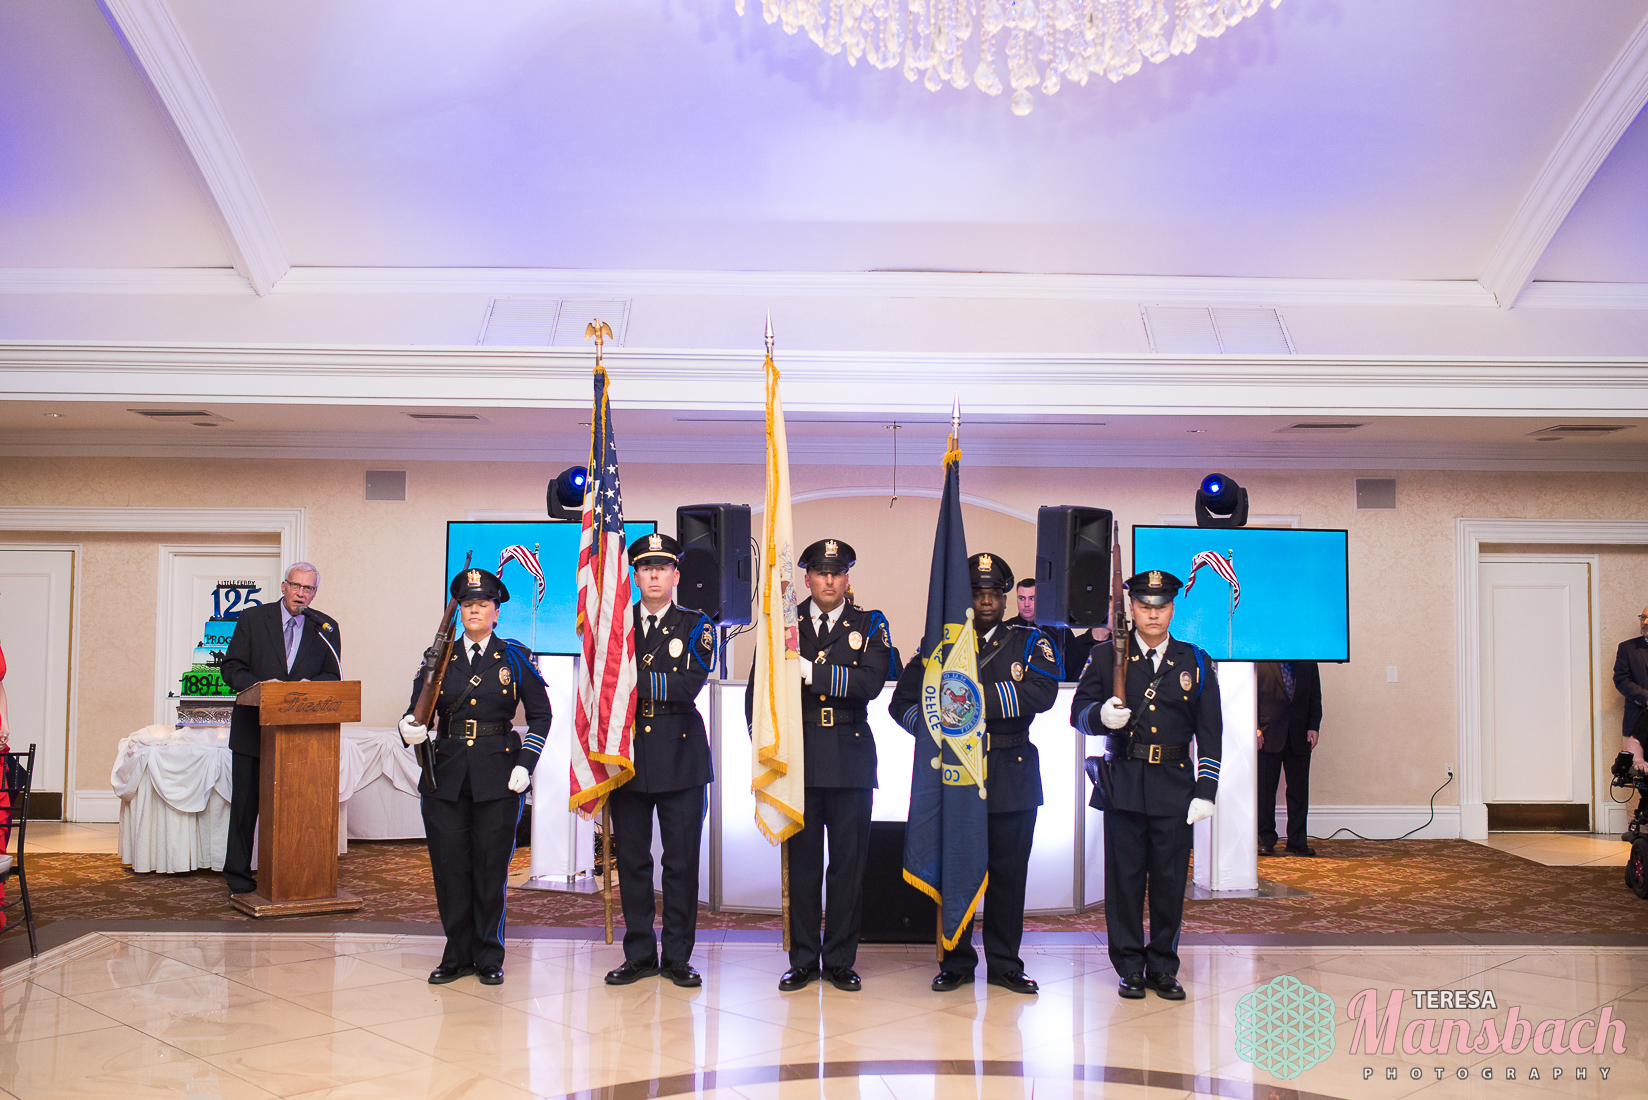 Bergen County Sheriff's Dept Color Guard